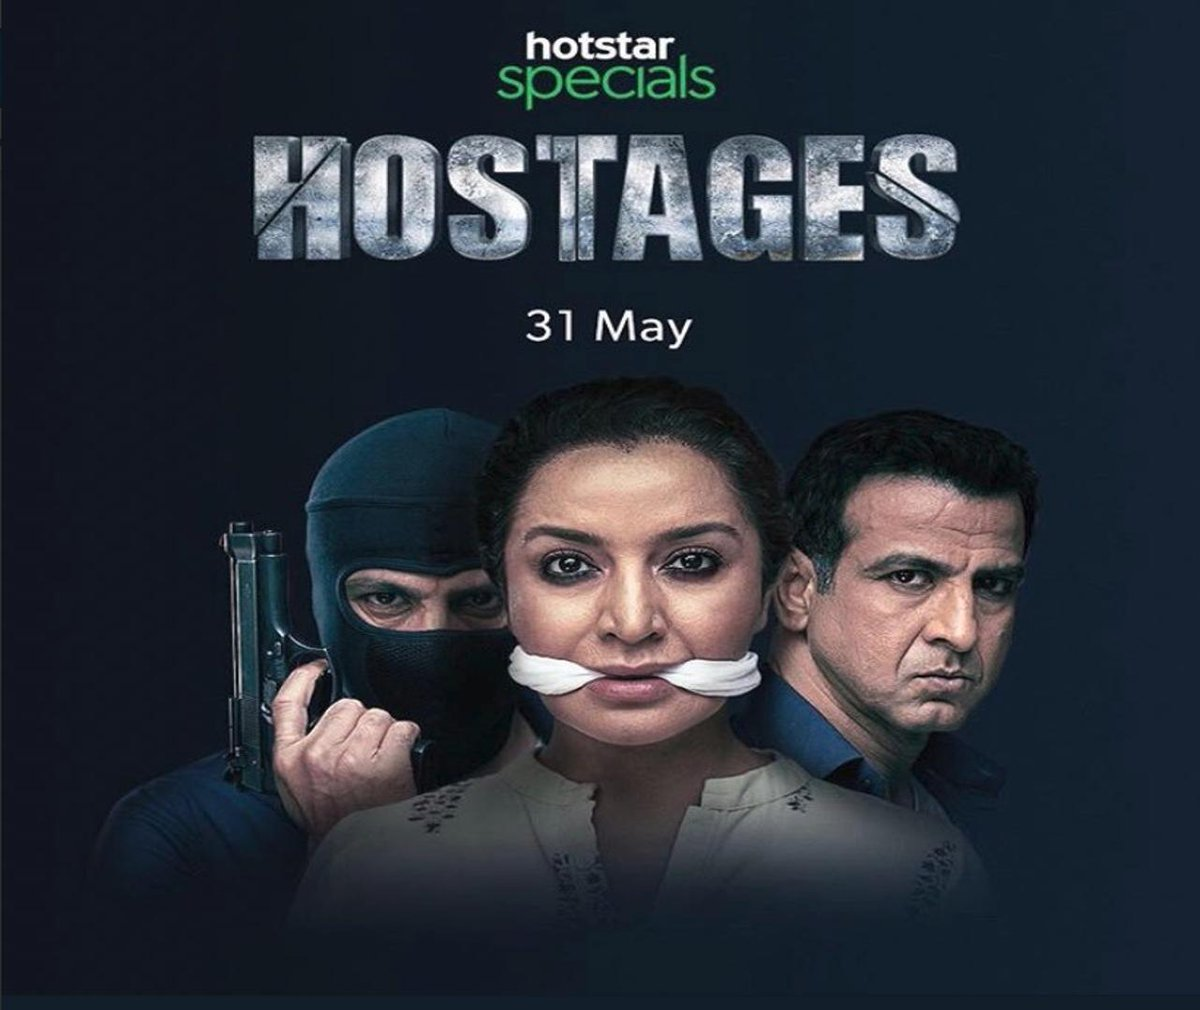 Catch the Indian remake of the popular  #Israeli series #Hostages that will premier on @hotstartweets on May 31. Are you excited? @RonitBoseRoy @tiscatime #ParveenDabbas #HostagesOnHotstar #Israeliseries